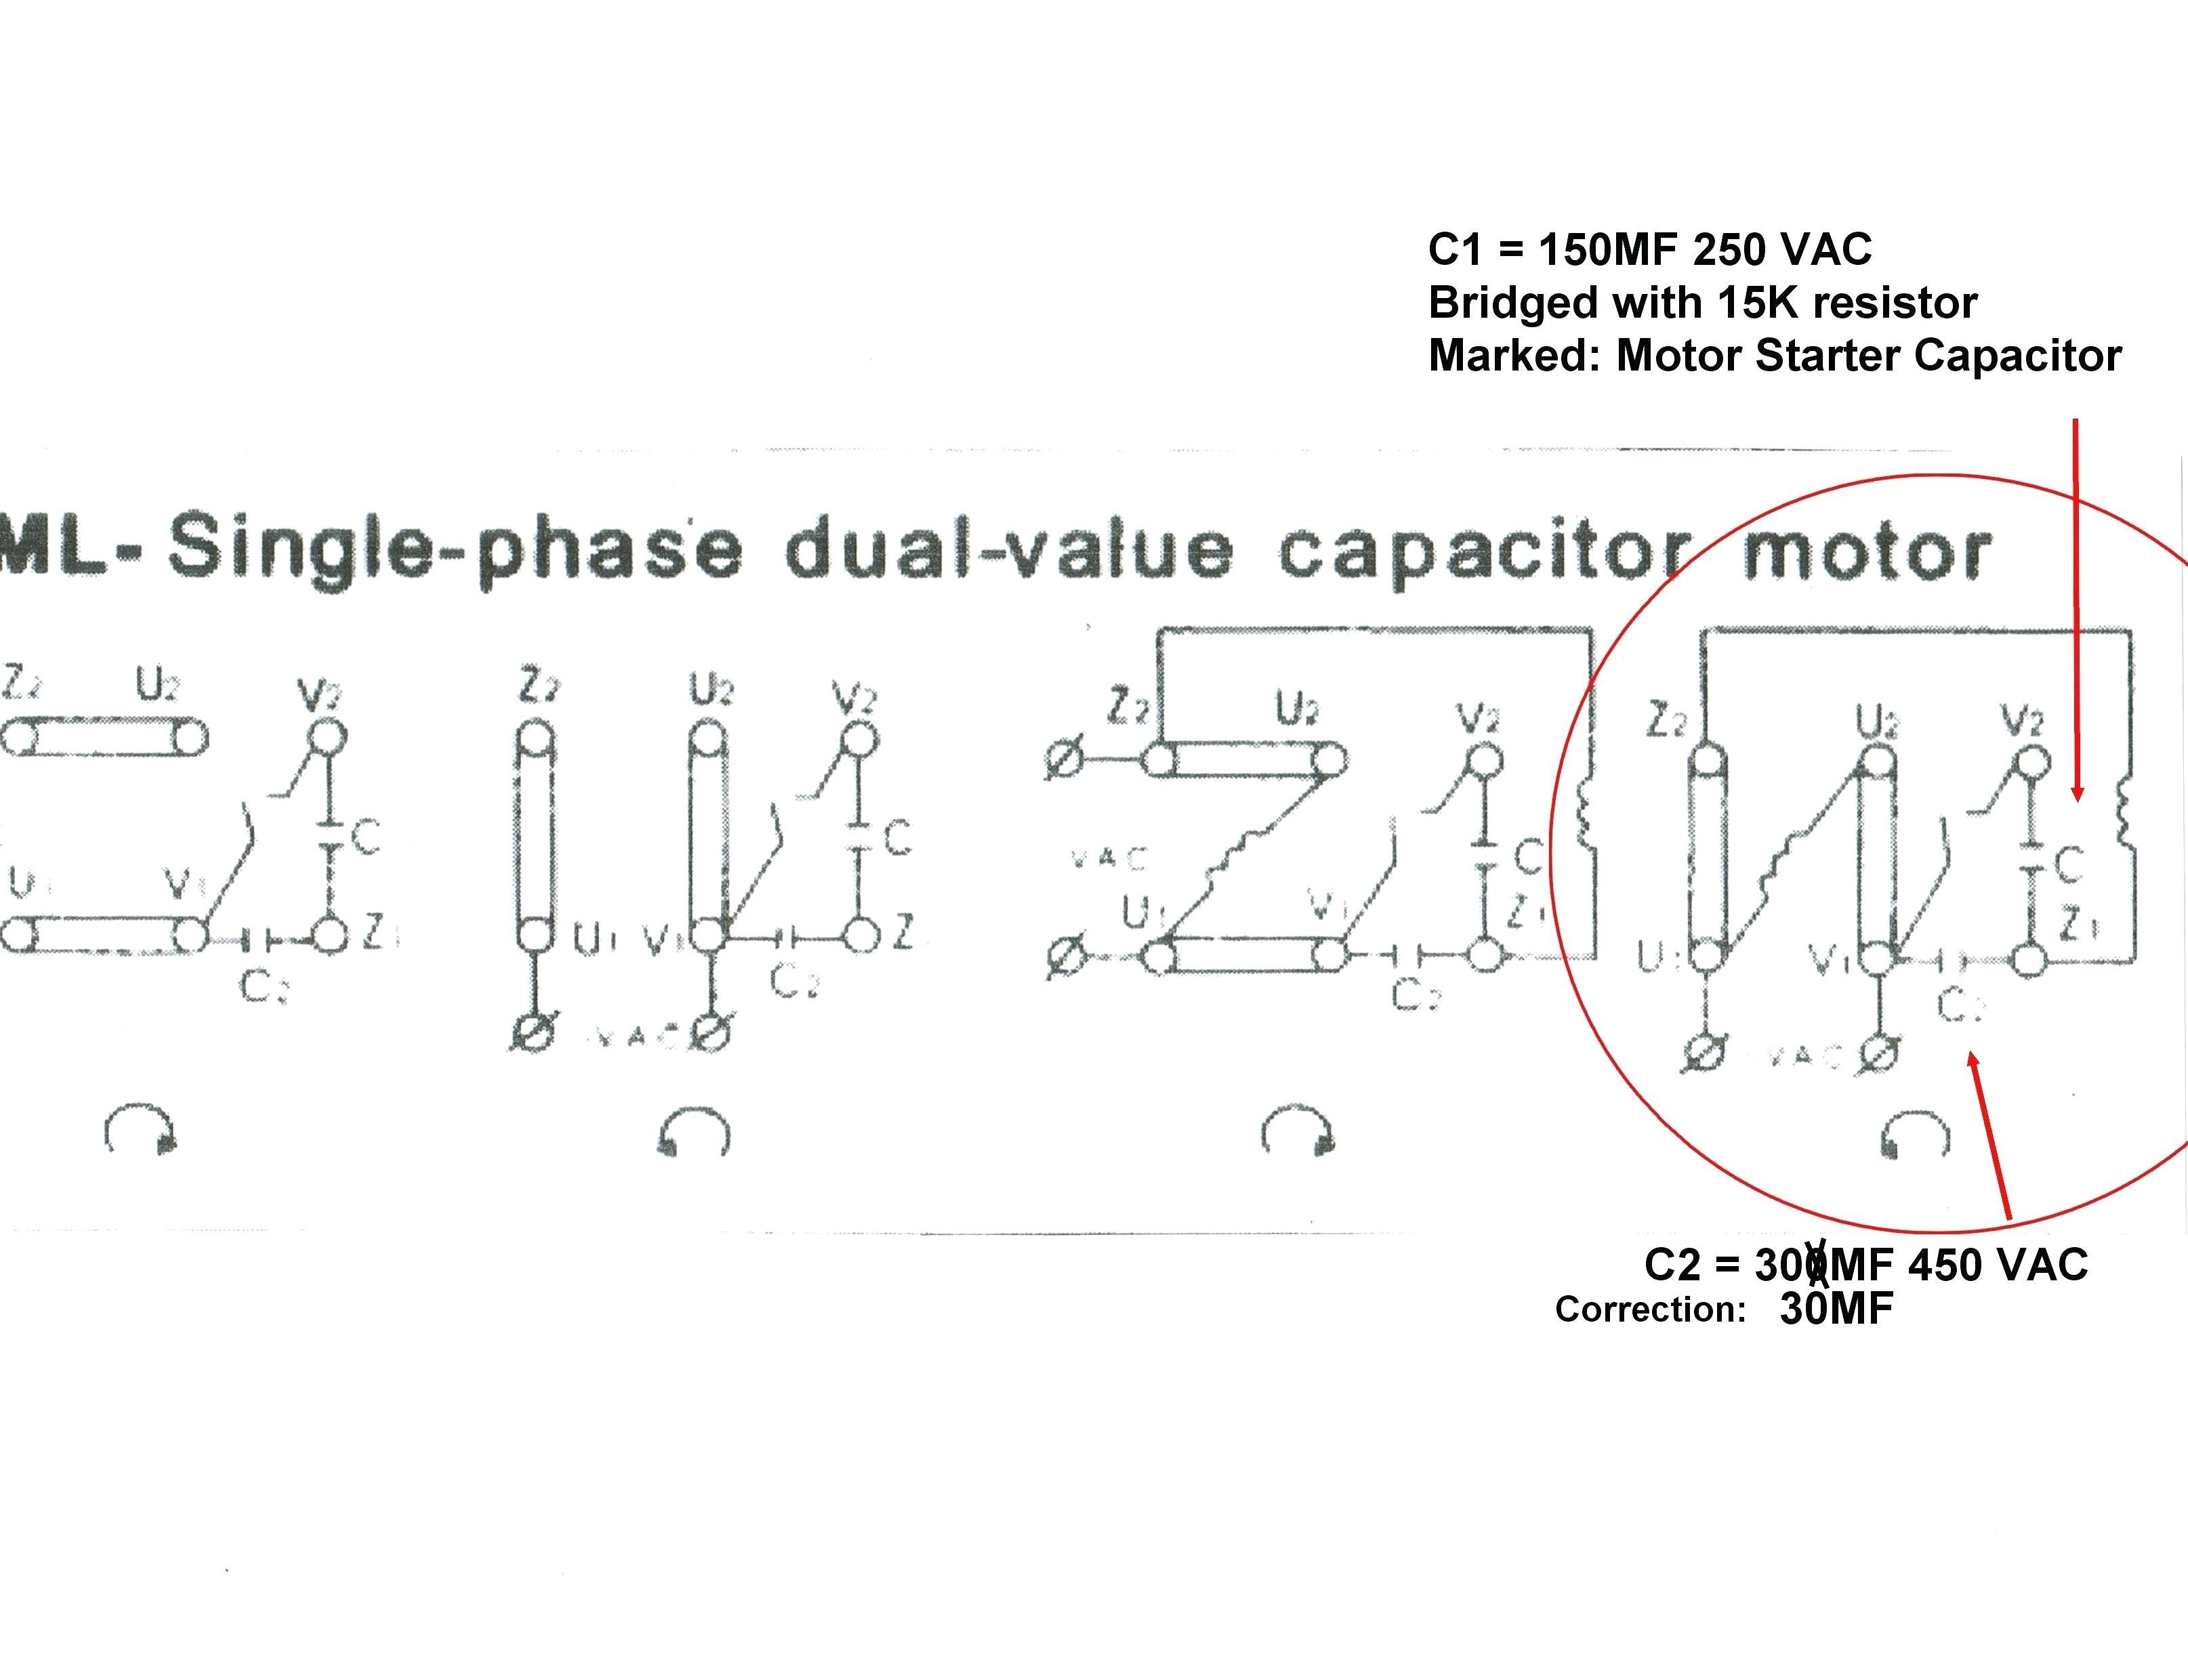 Wiring Diagram for Electric Motor with Capacitor Best Single Phase Motor Wiring Diagram with Capacitor Beautiful